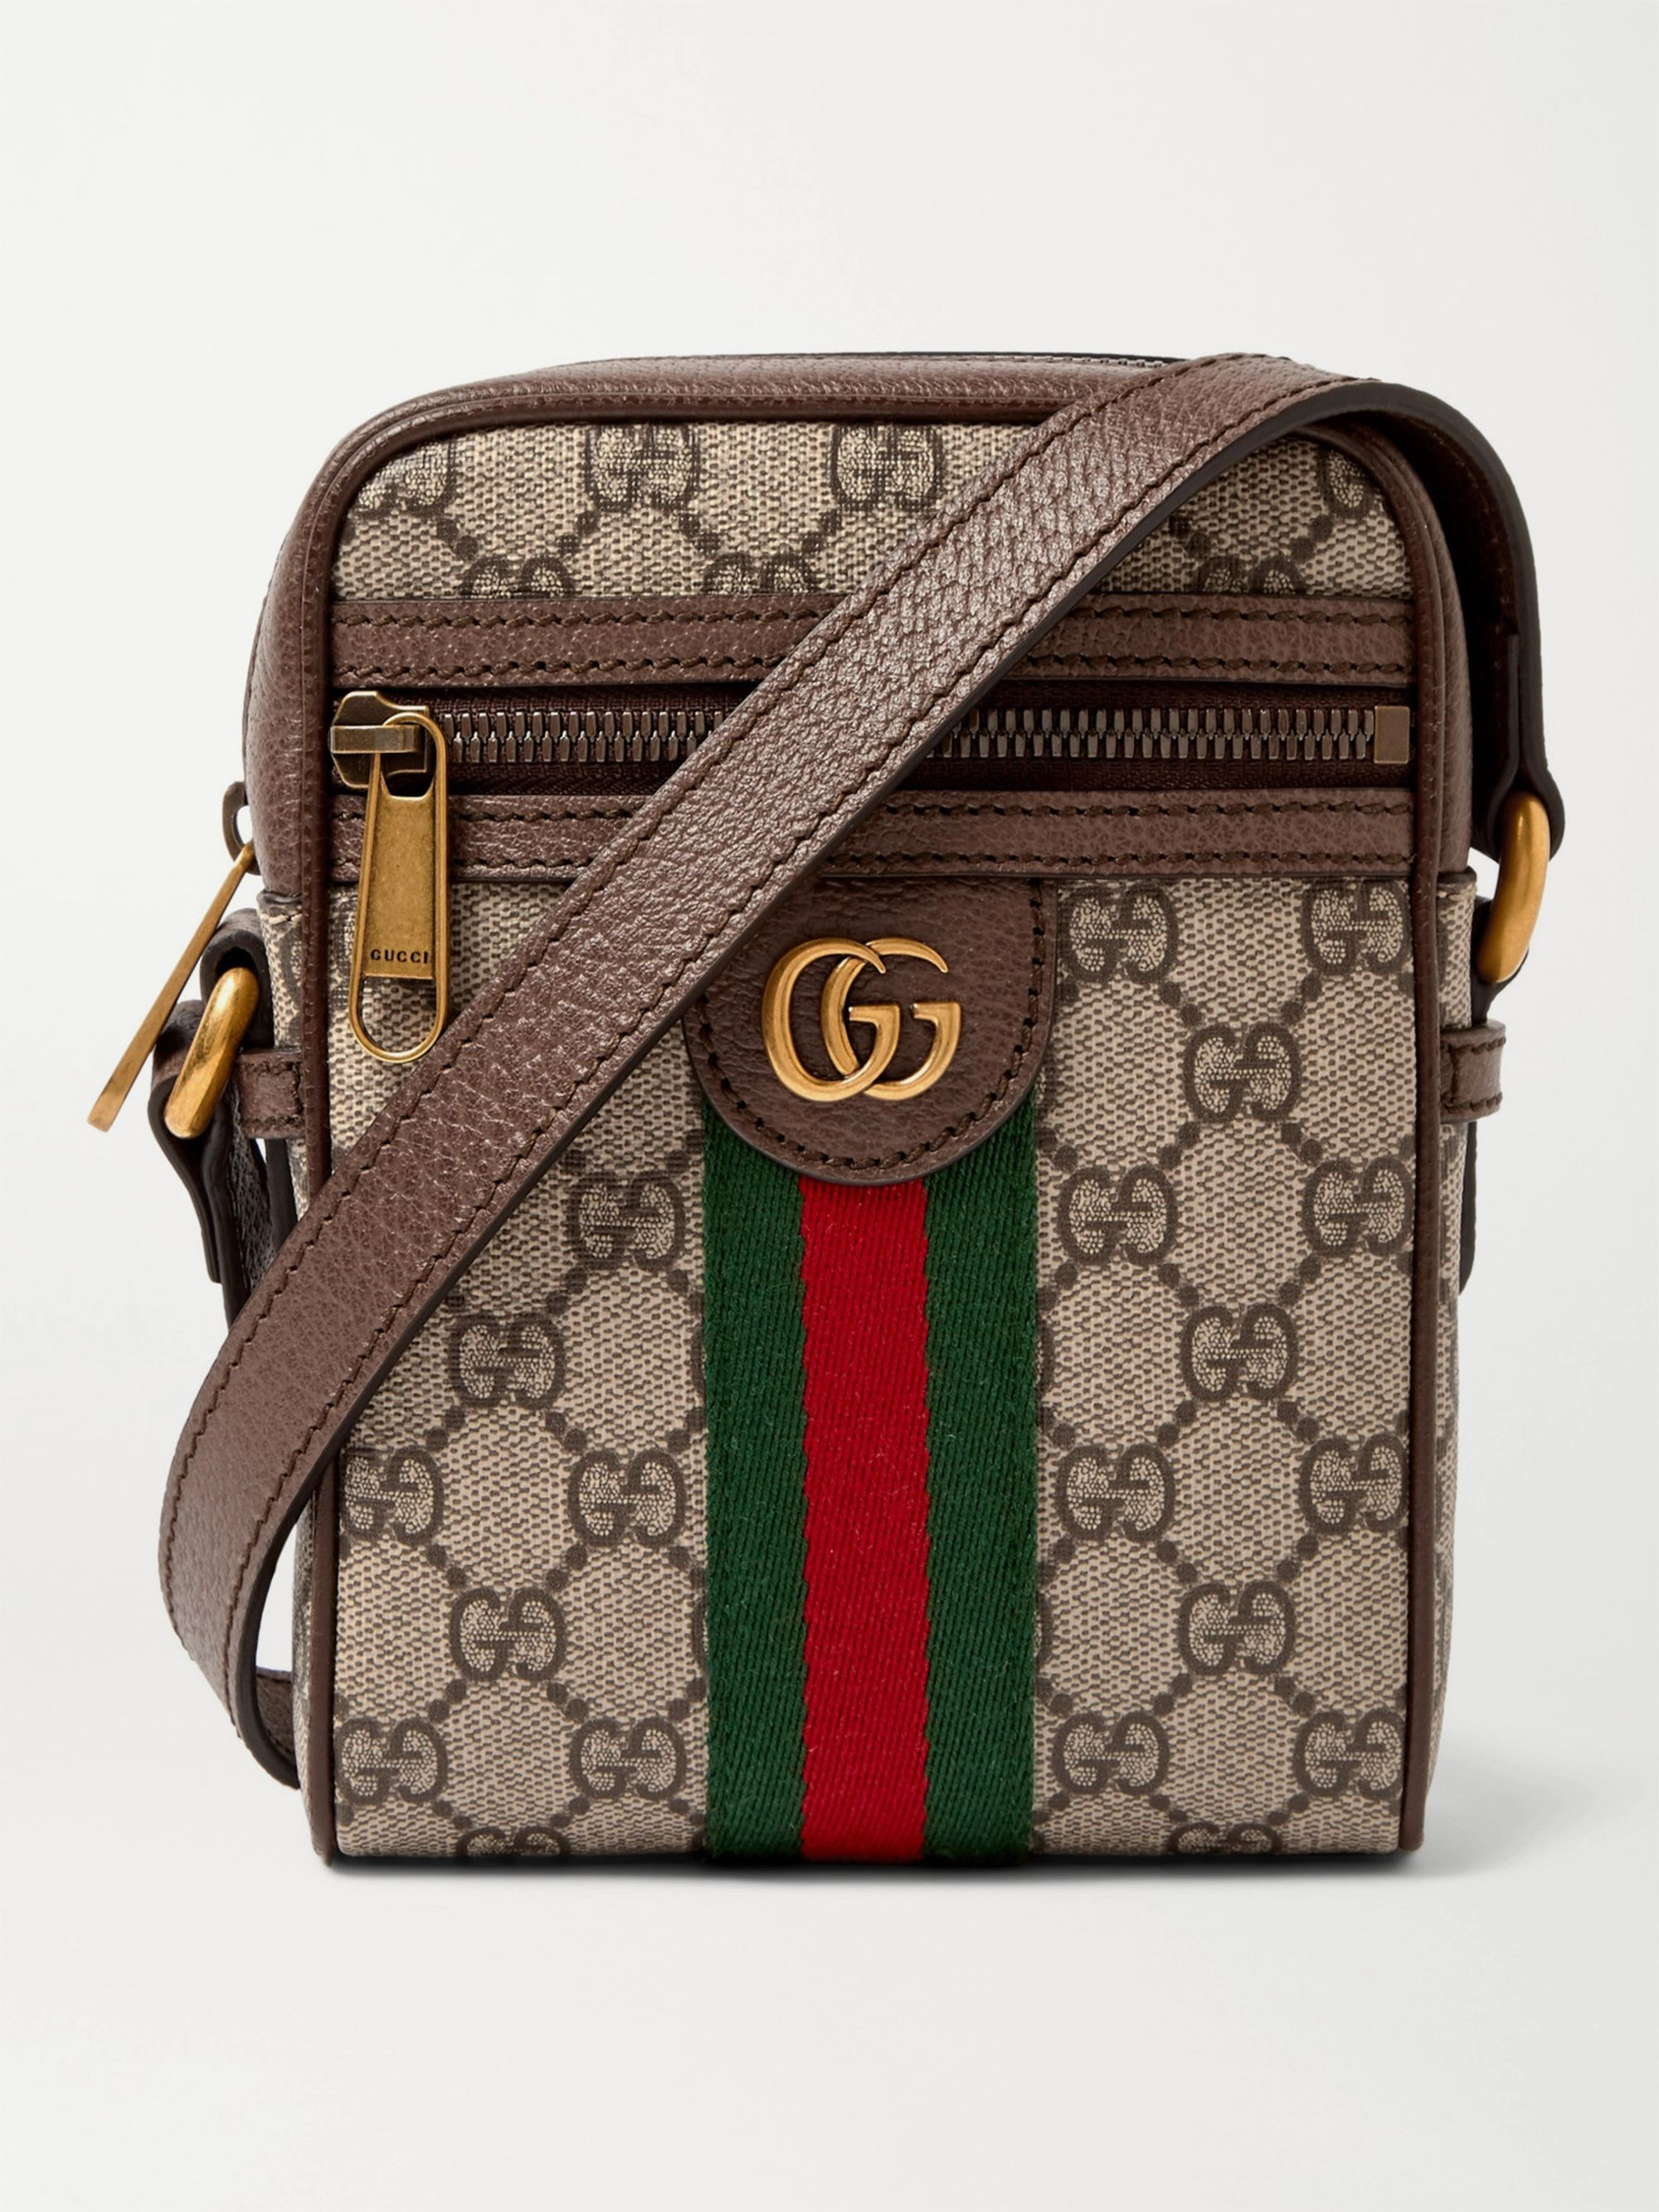 GUCCI Ophidia Mini Leather-Trimmed Monogrammed Coated-Canvas Messenger Bag